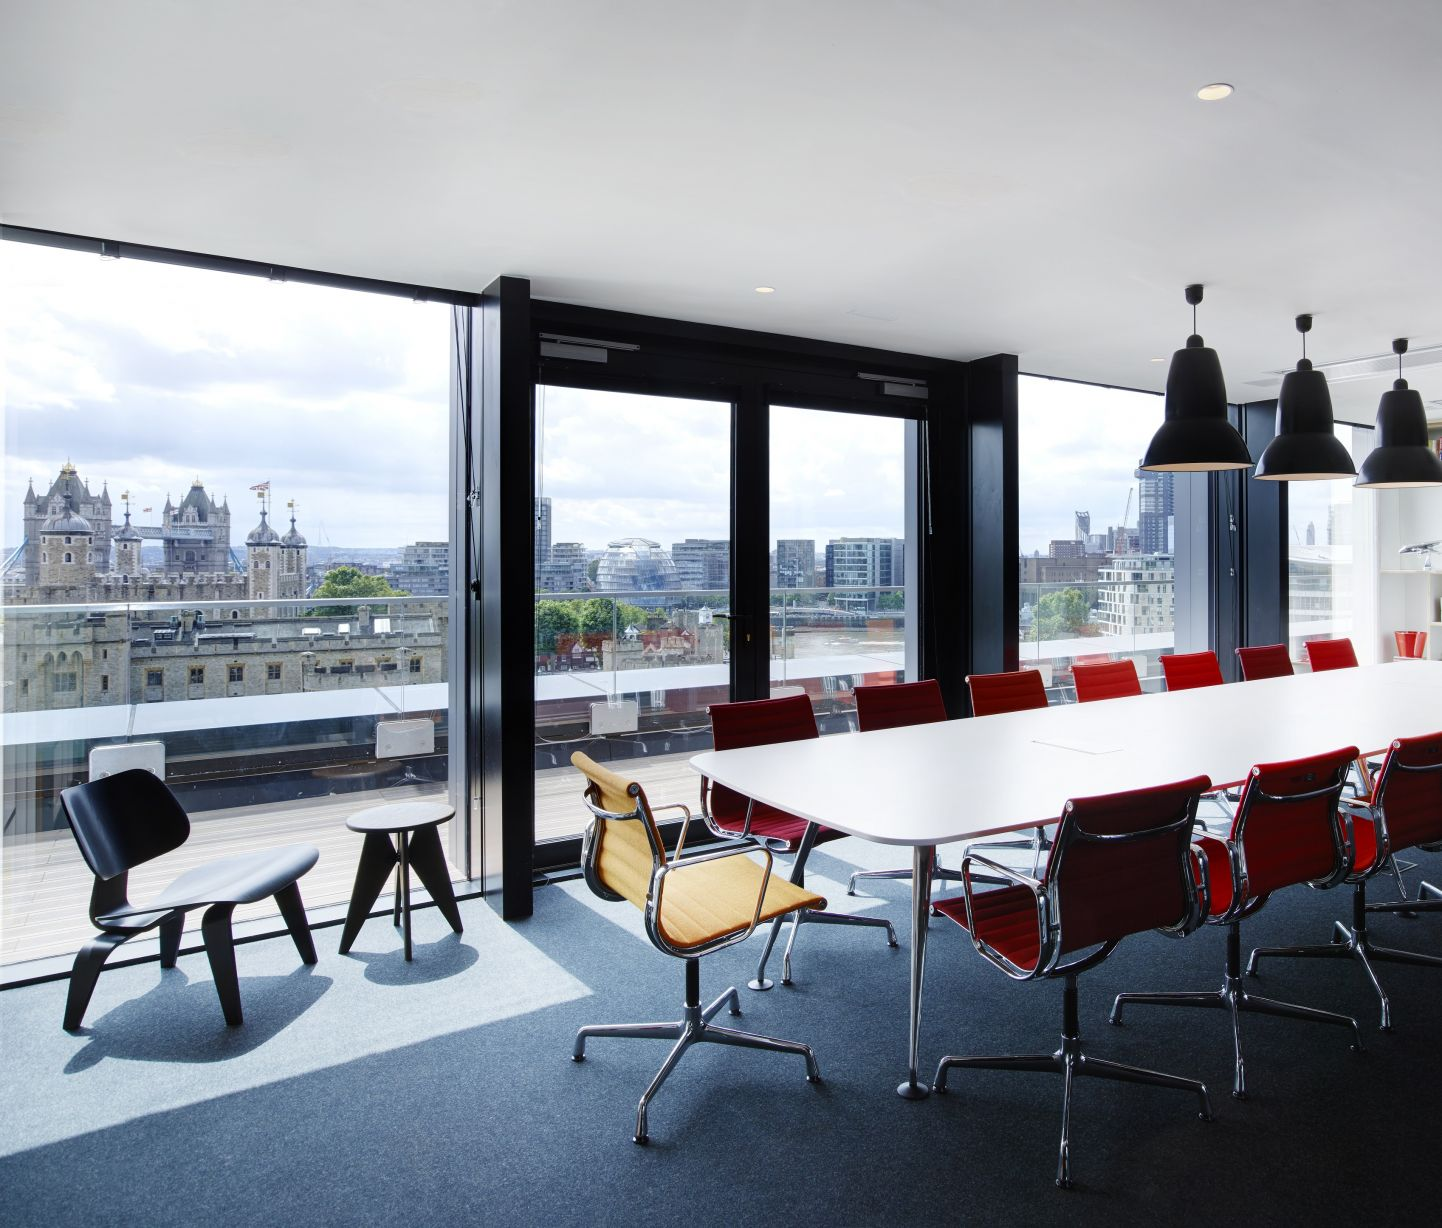 renegade-generation-discover-you-masterclass-mid-career-workshop-citizenm-london-9.jpg